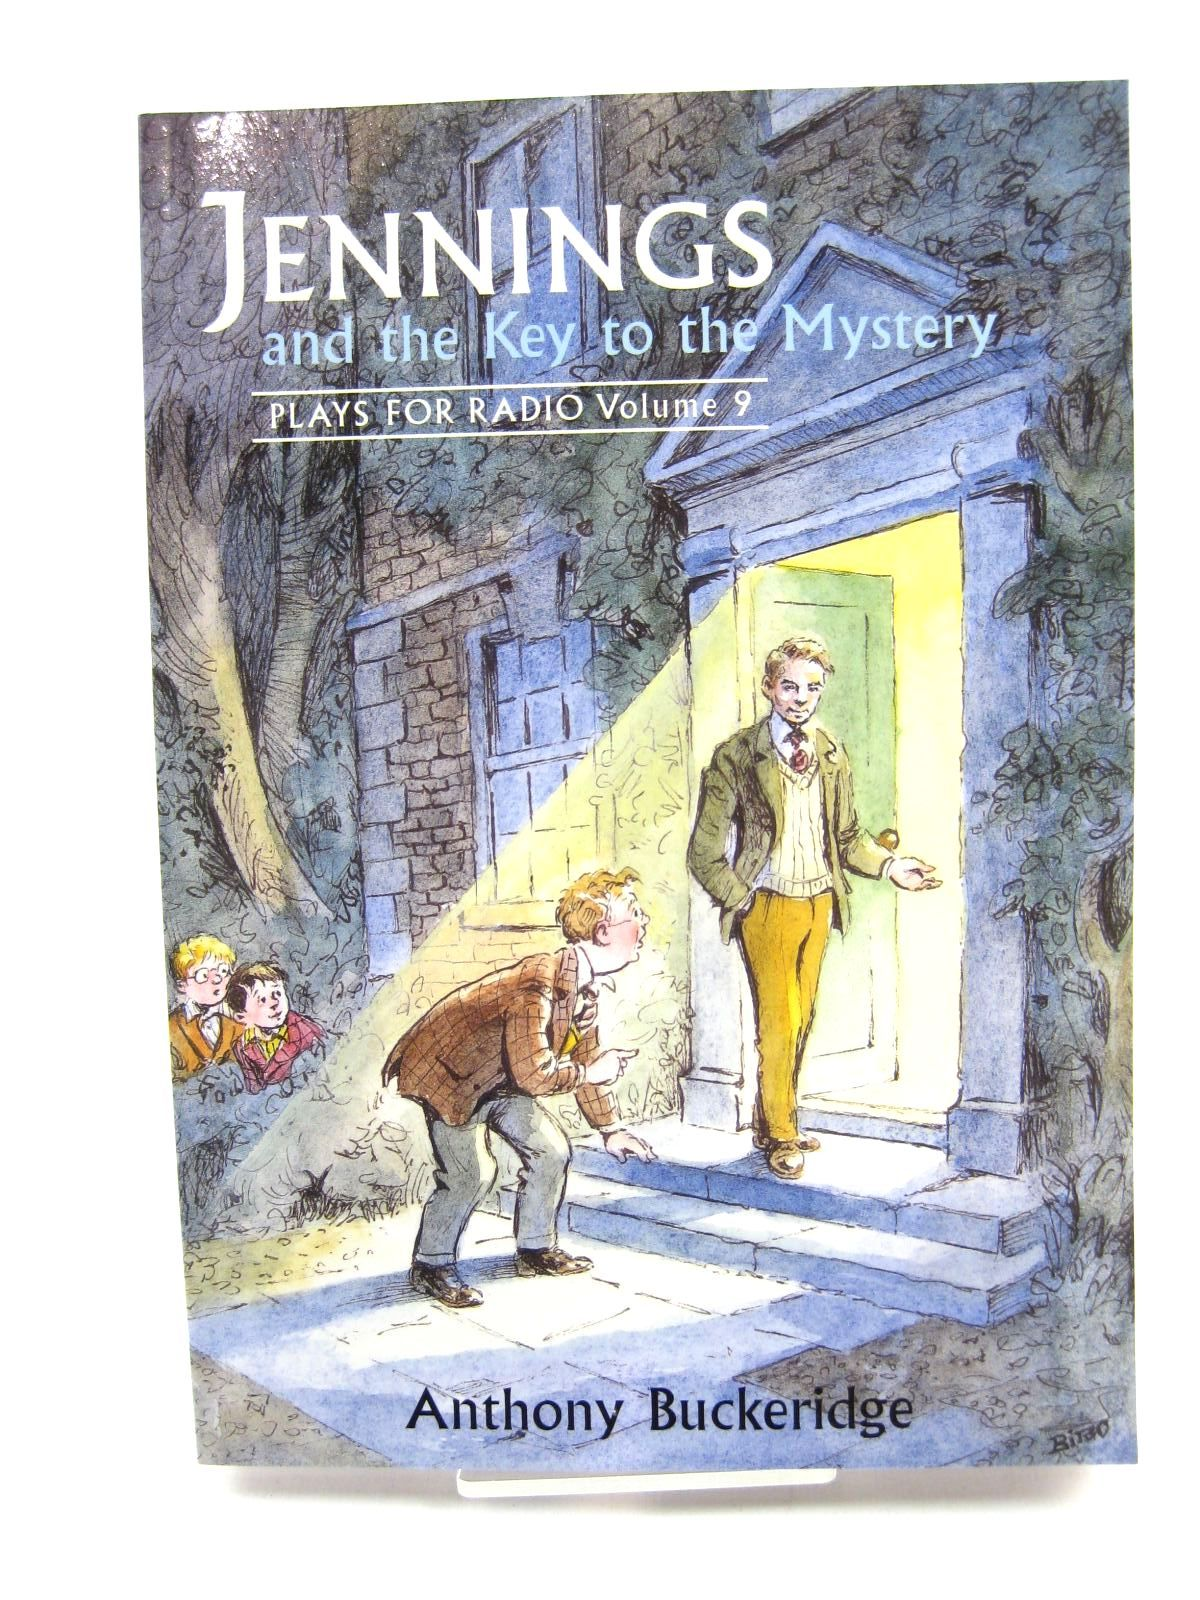 Cover of JENNINGS AND THE KEY TO THE MYSTERY by Anthony Buckeridge